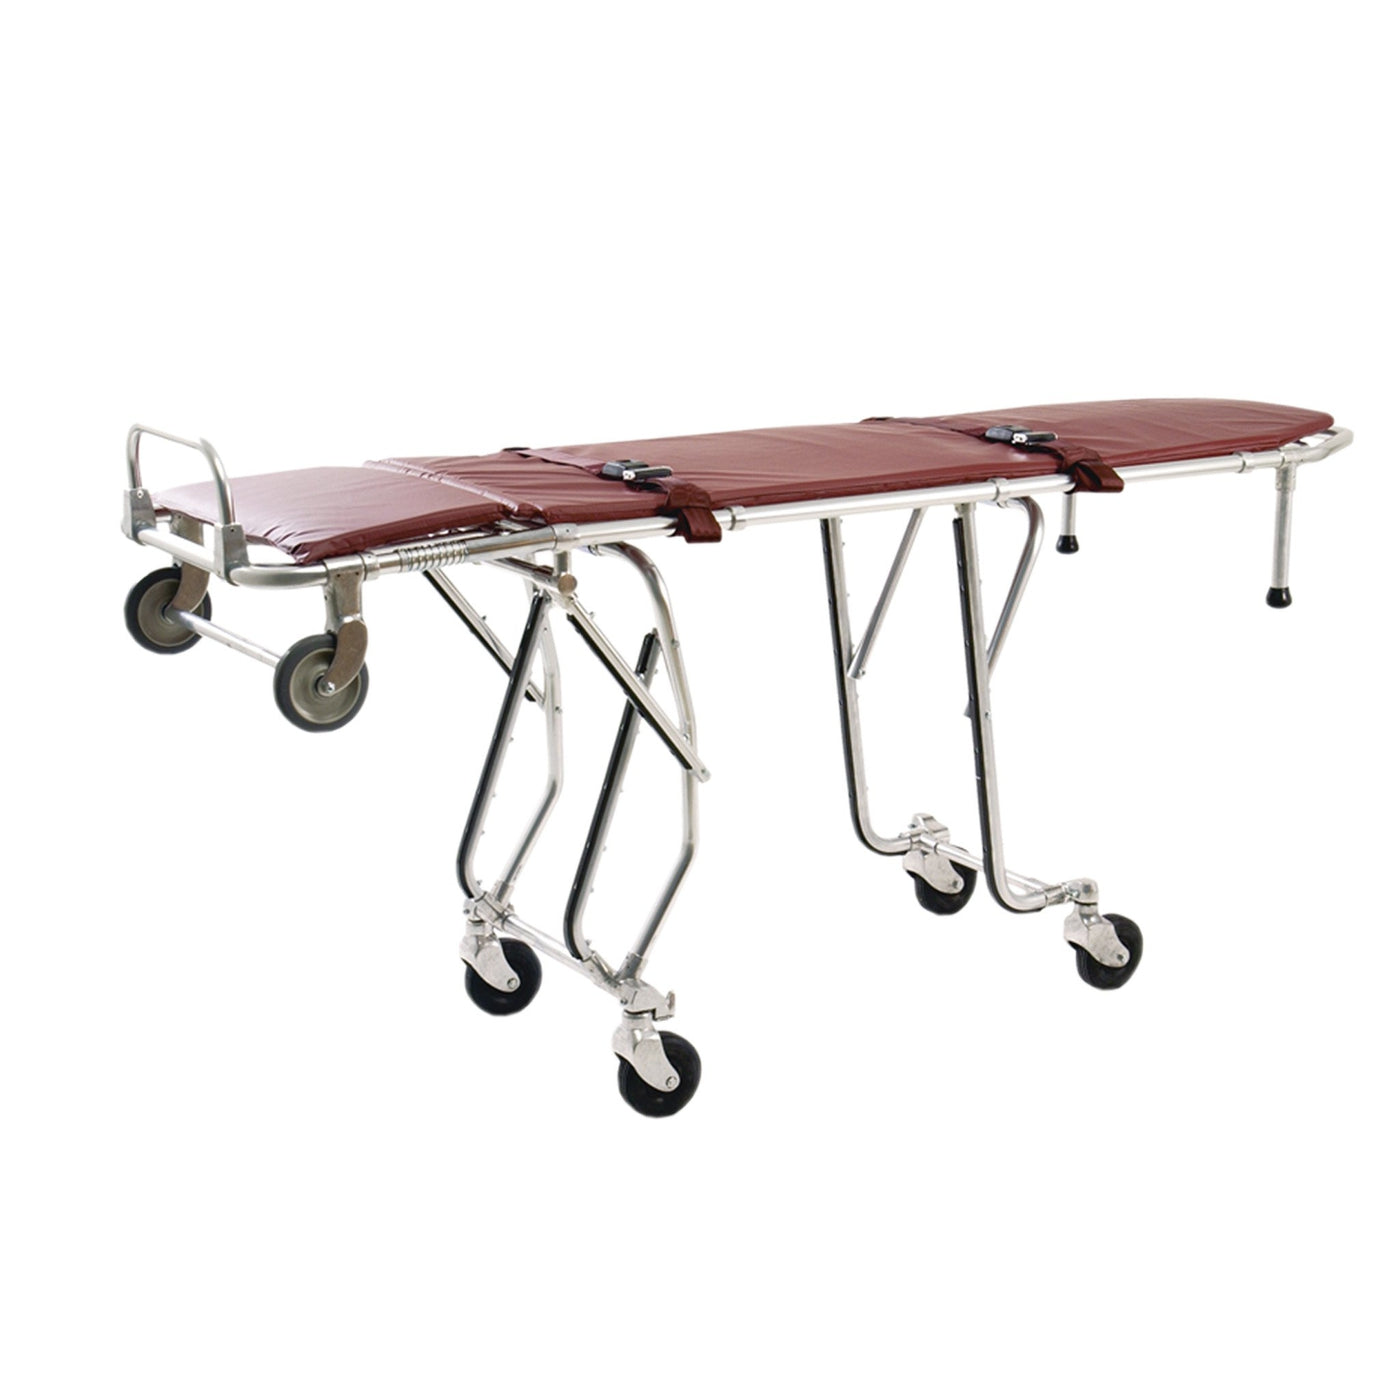 First Call Mortuary Cot-Body Transporter-Mortech Manufacturing Company Inc. Quality Stainless Steel Autopsy, Morgue, Funeral Home, Necropsy, Veterinary / Anatomy, Dissection Equipment and Accessories